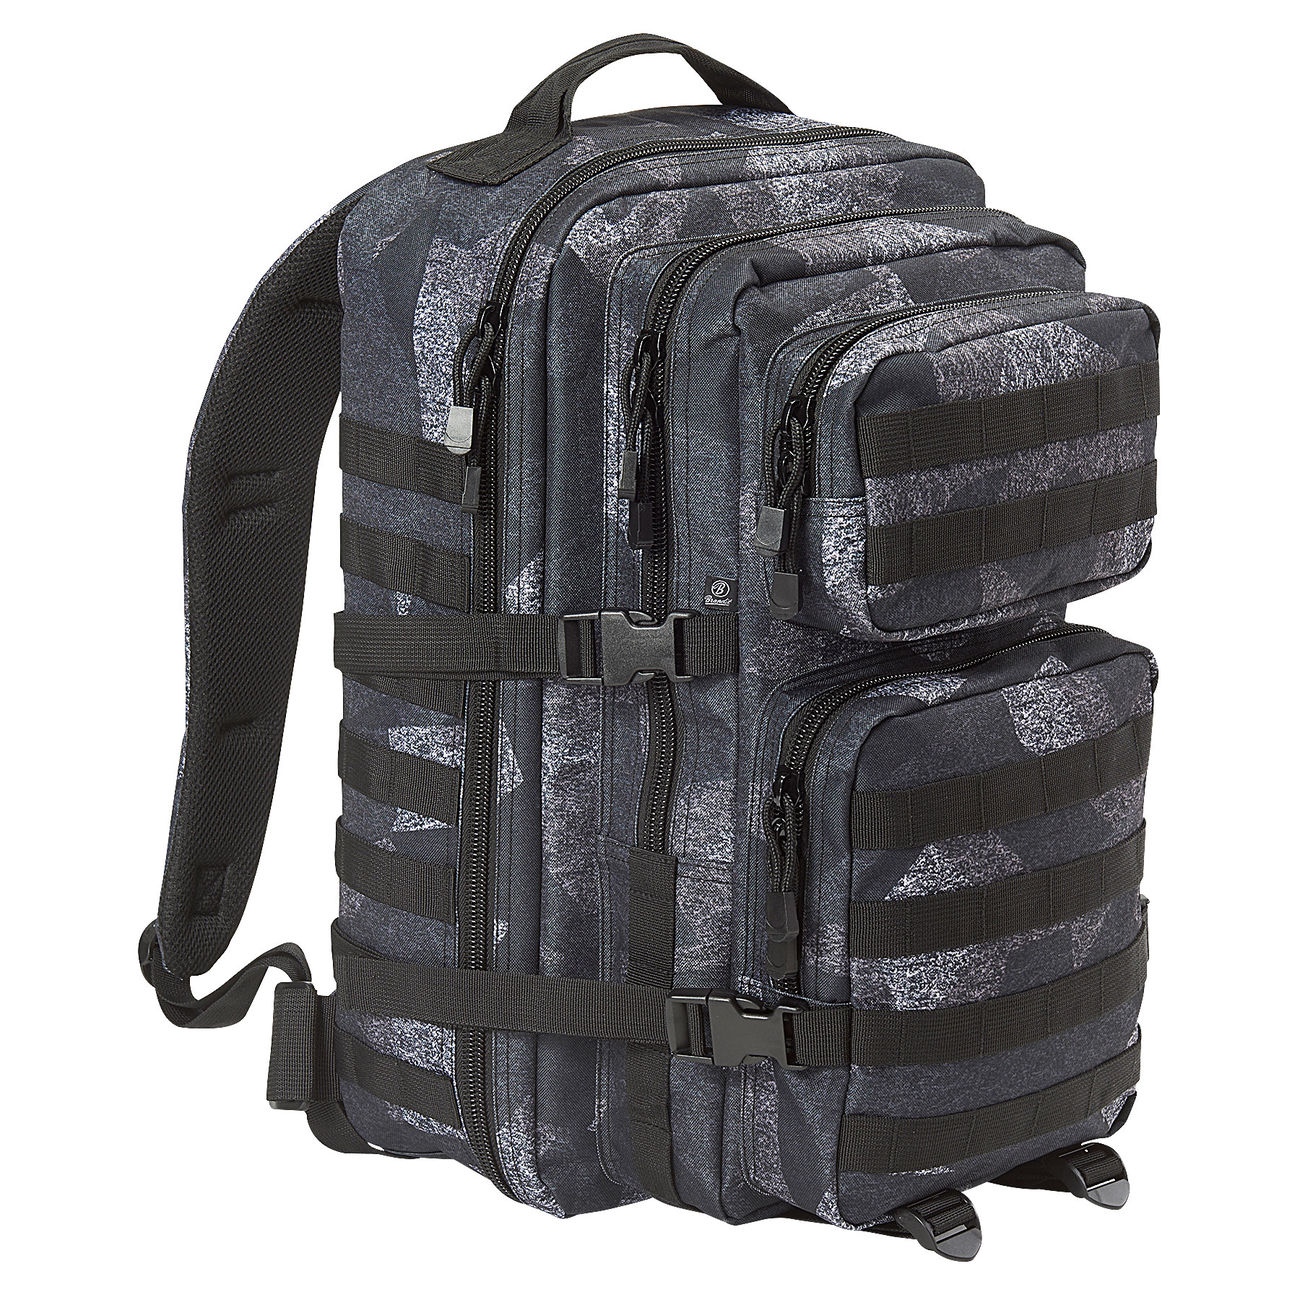 Brandit Rucksack US Cooper Large 40 Liter night camo digital 0